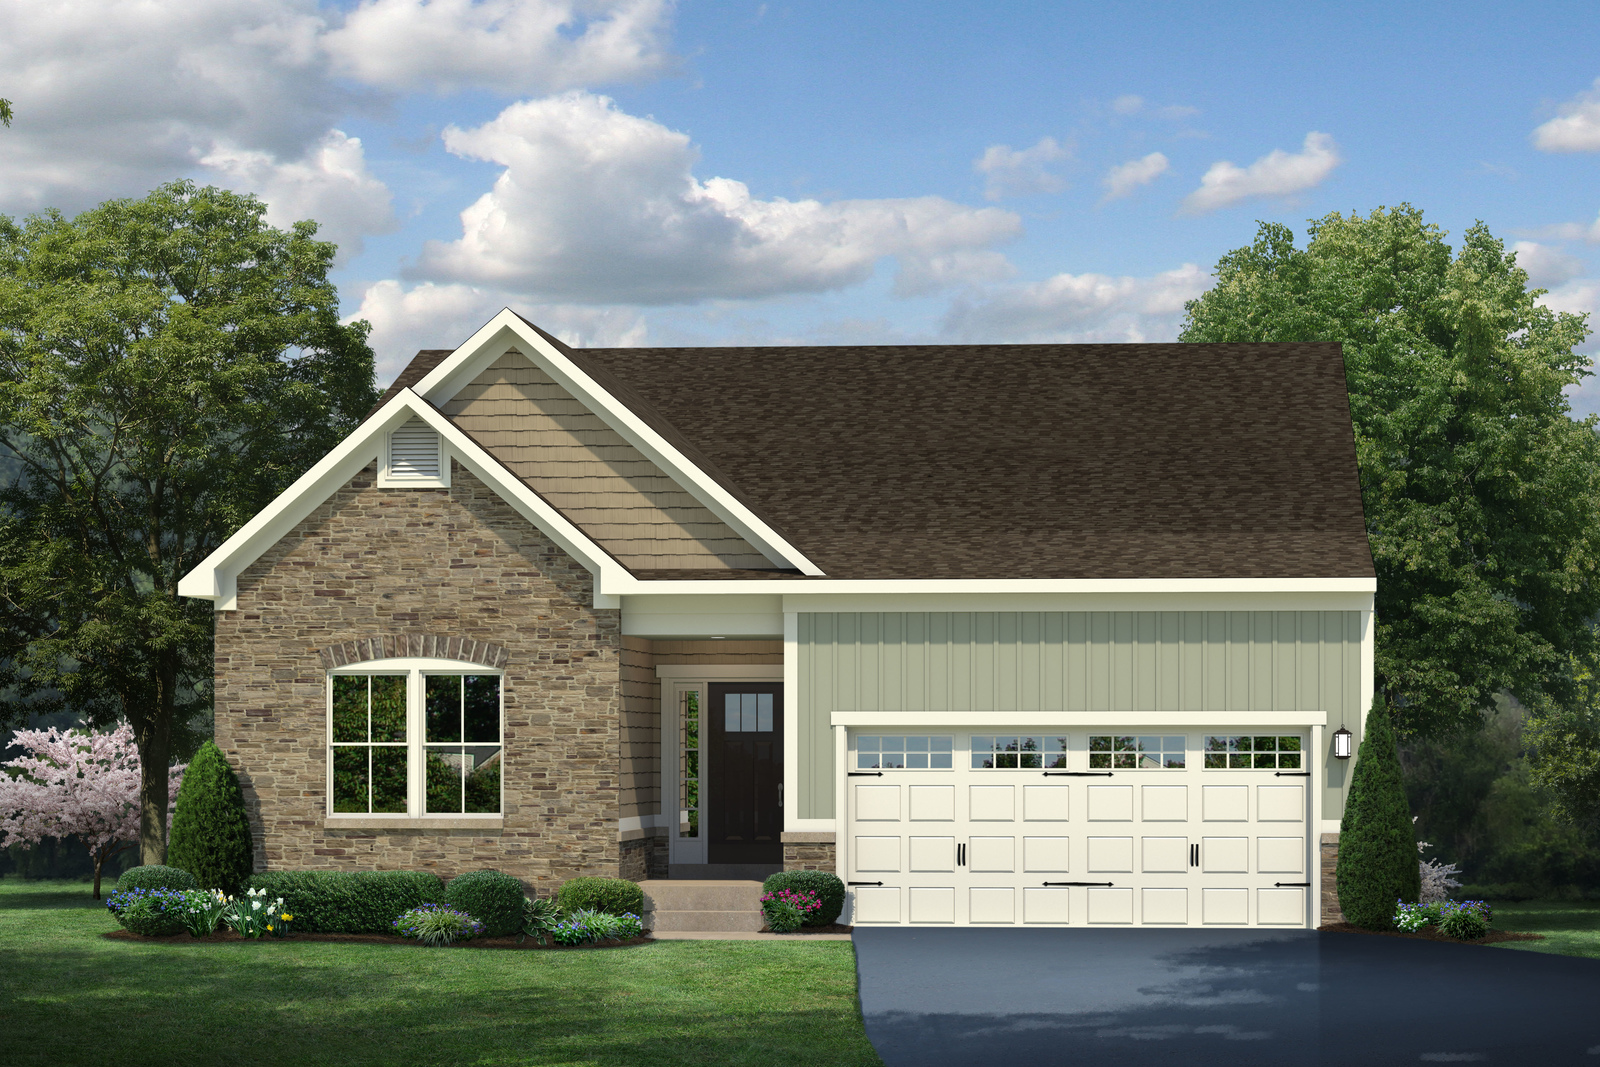 Ryan Homes Floor Plans Ohio: New Pisatorre Home Model For Sale At Kallay Farms In